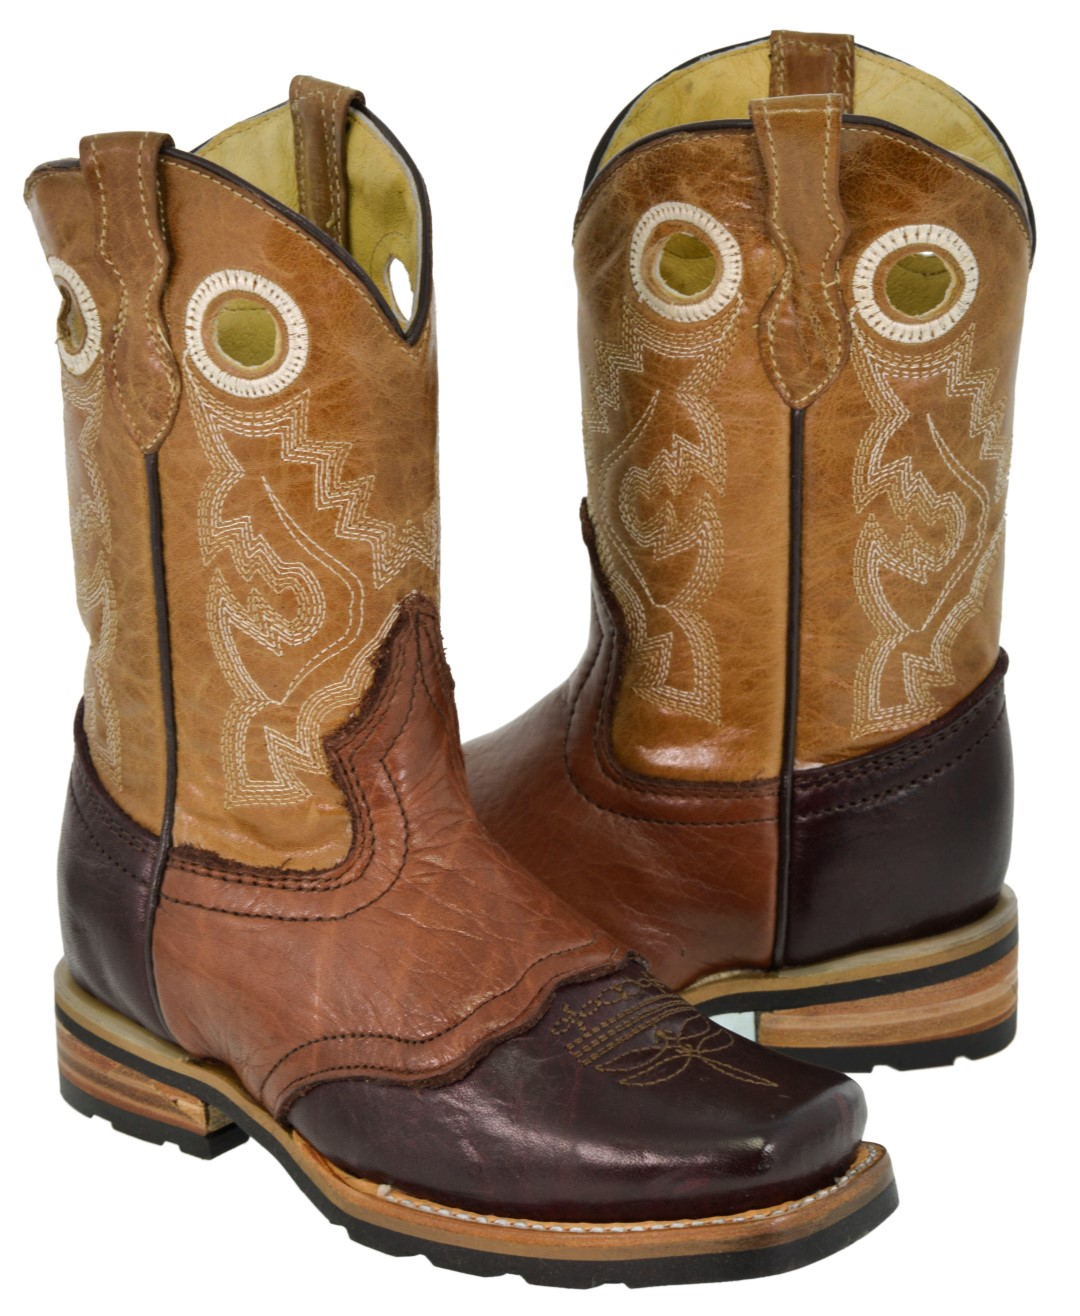 Veretta Boots Kids Toddler Sand Crocodile Tail Leather Cowboy Boots J Toe